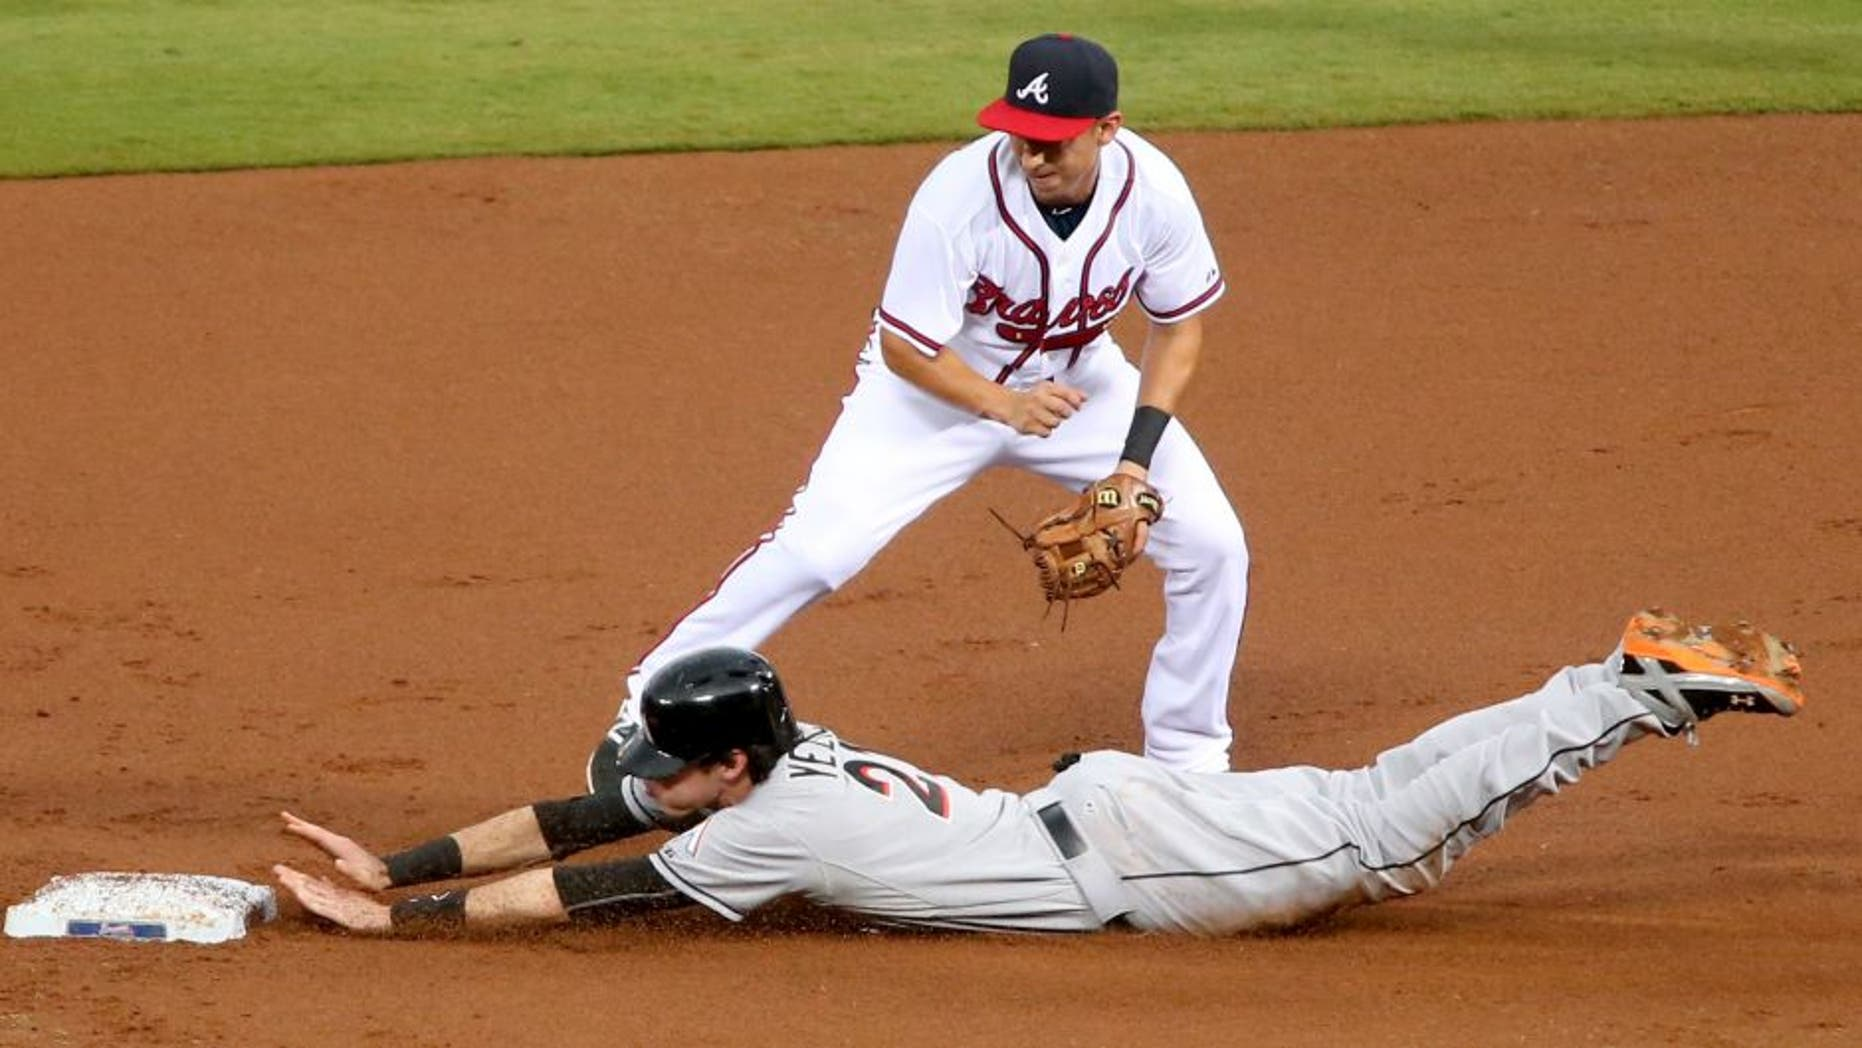 Aug 6, 2015; Atlanta, GA, USA; Miami Marlins left fielder Christian Yelich (21) steals second base ahead of the tag by Atlanta Braves shortstop Daniel Castro (11) in the first inning of their game at Turner Field. Mandatory Credit: Jason Getz-USA TODAY Sports